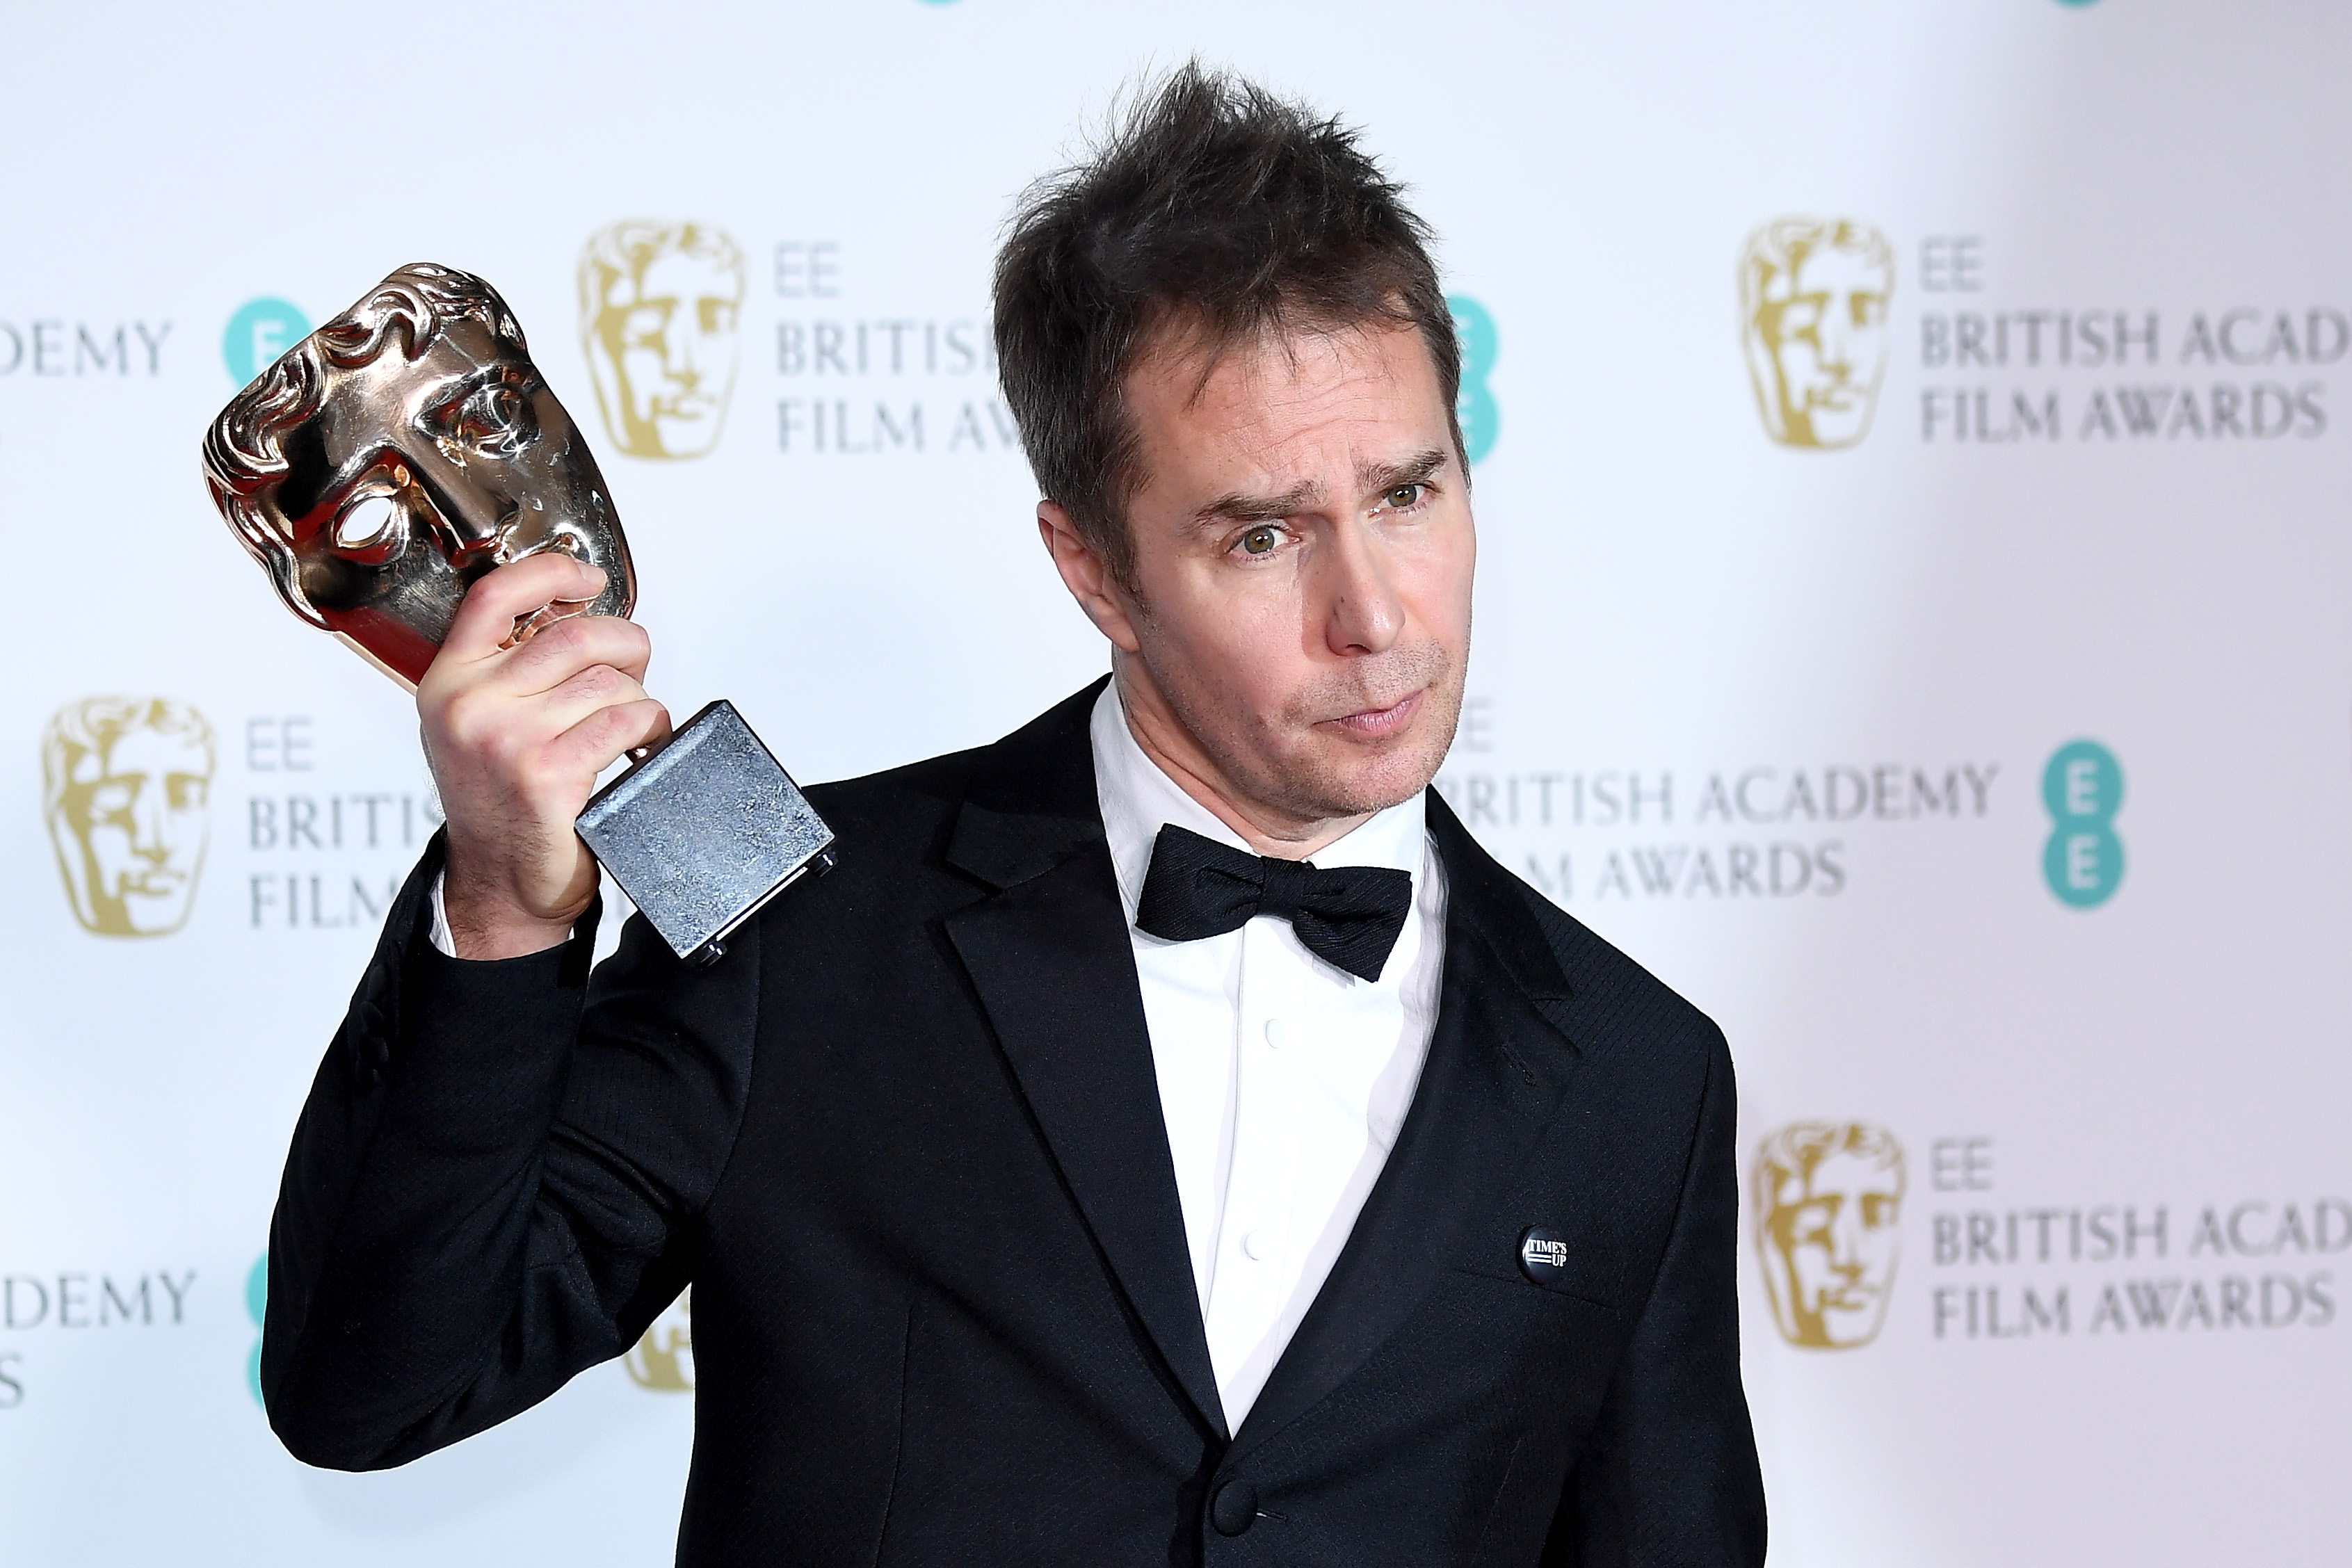 Sam Rockwell, winner of the Best Supporting Actor award for the movie 'Three Billboards Outside Ebbing, Missouri' poses in the press room during the EE British Academy Film Awards (BAFTA) held at Royal Albert Hall on February 18, 2018 in London, England (Getty Images)